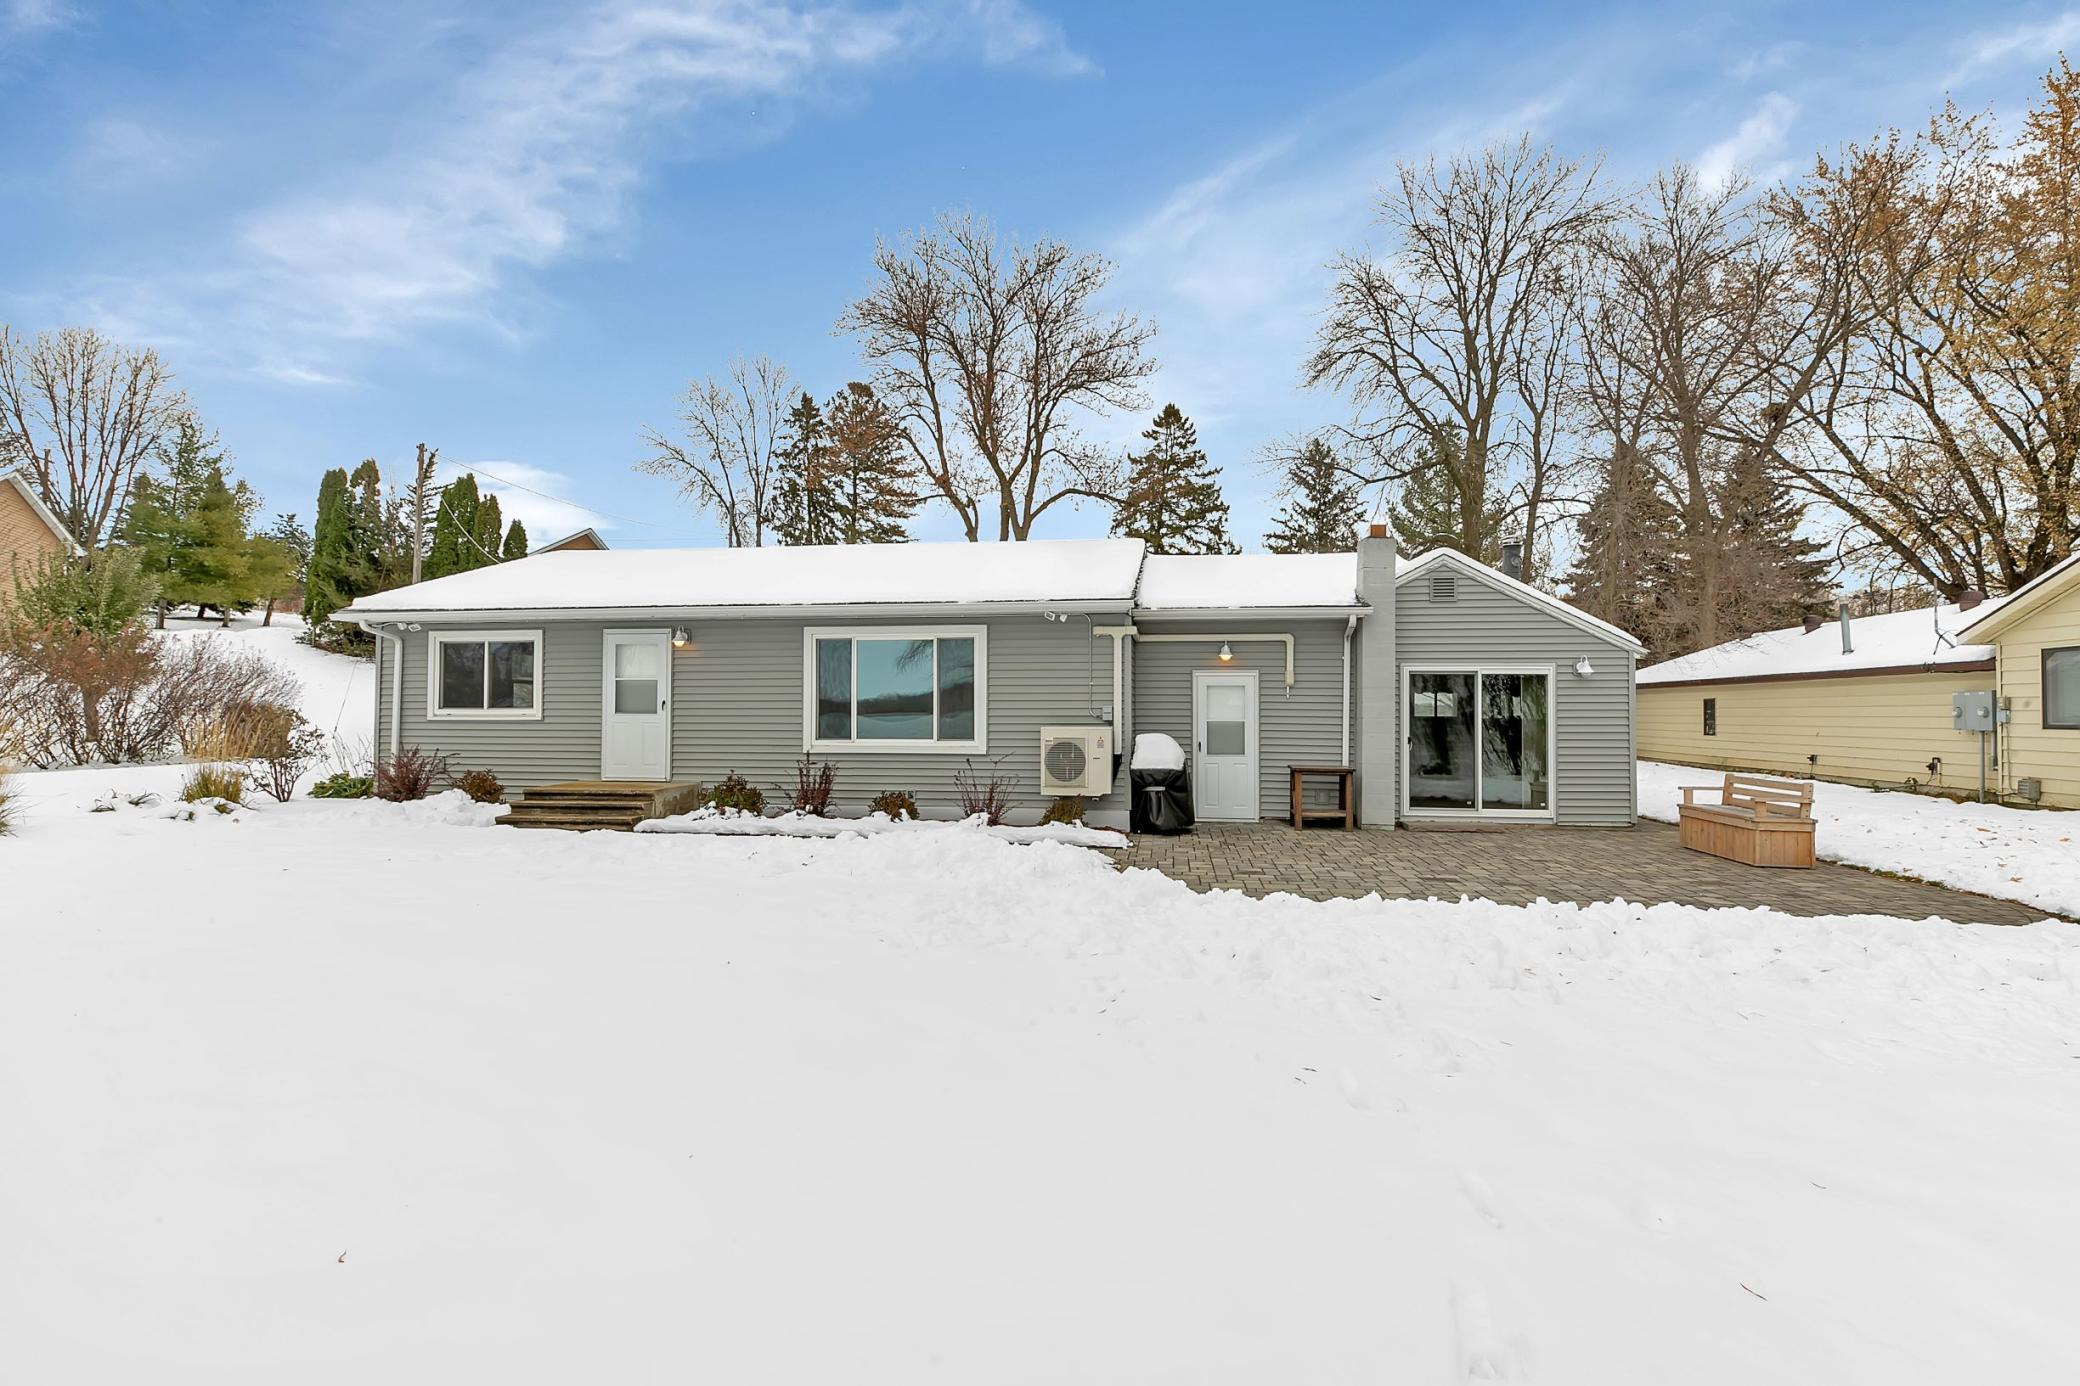 22621 708th Avenue Property Photo - Dassel, MN real estate listing